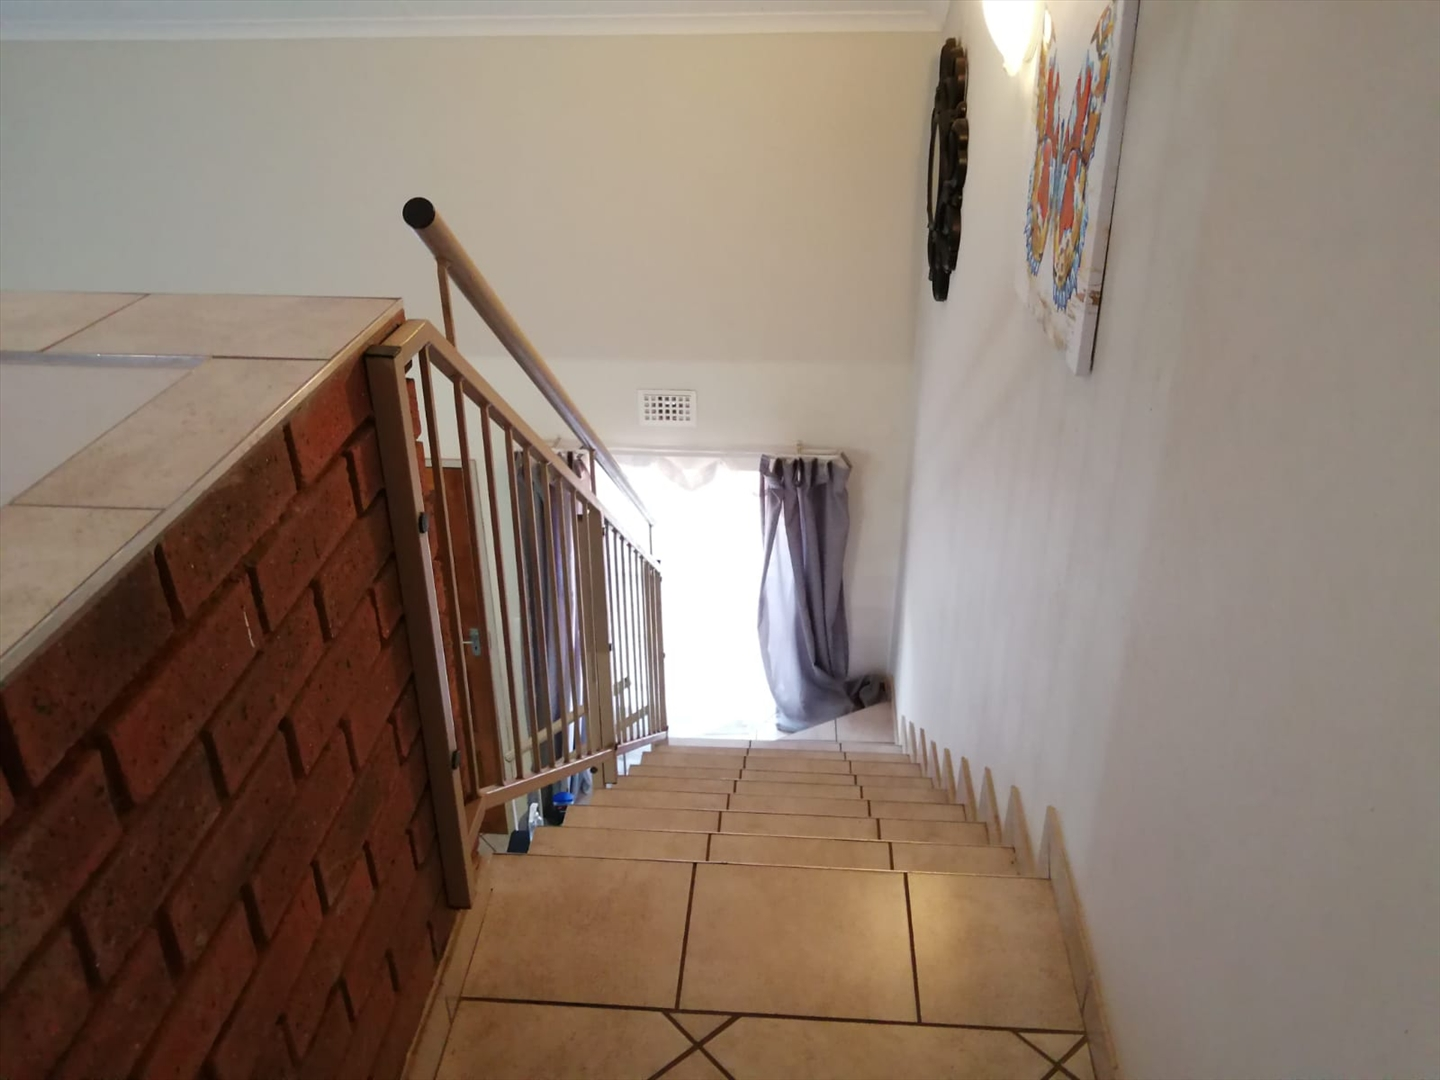 View of staircase going down